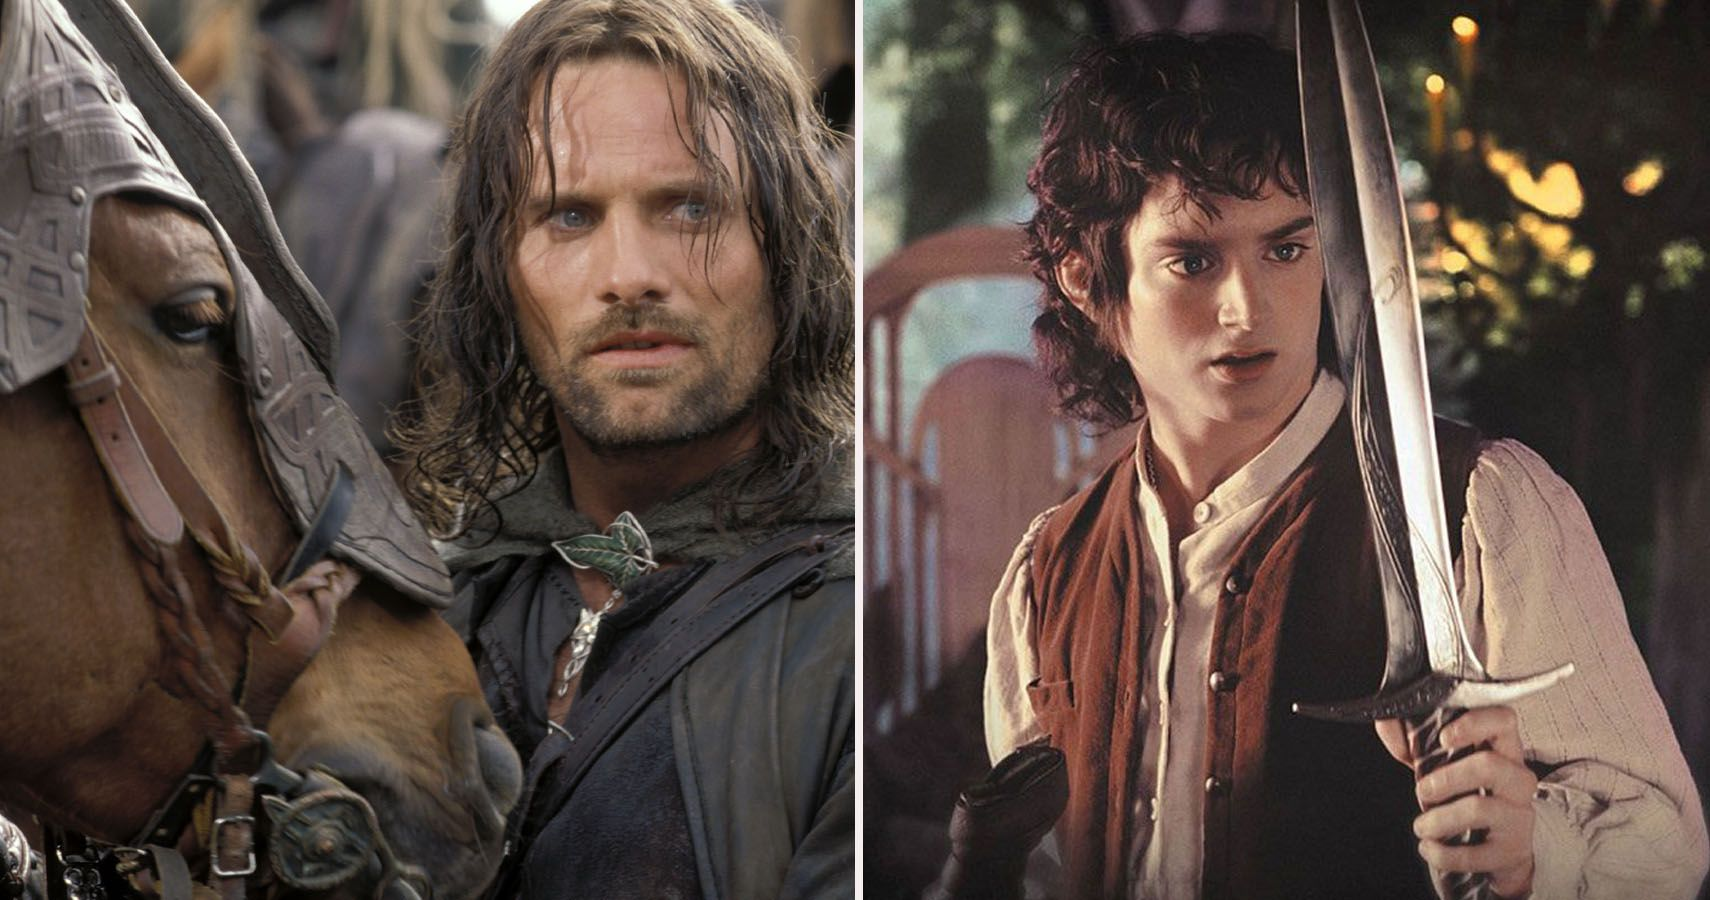 The Middle Earth Franchise, with a total of 6 films and a score of 79.8%, is ranked seventh on the list.